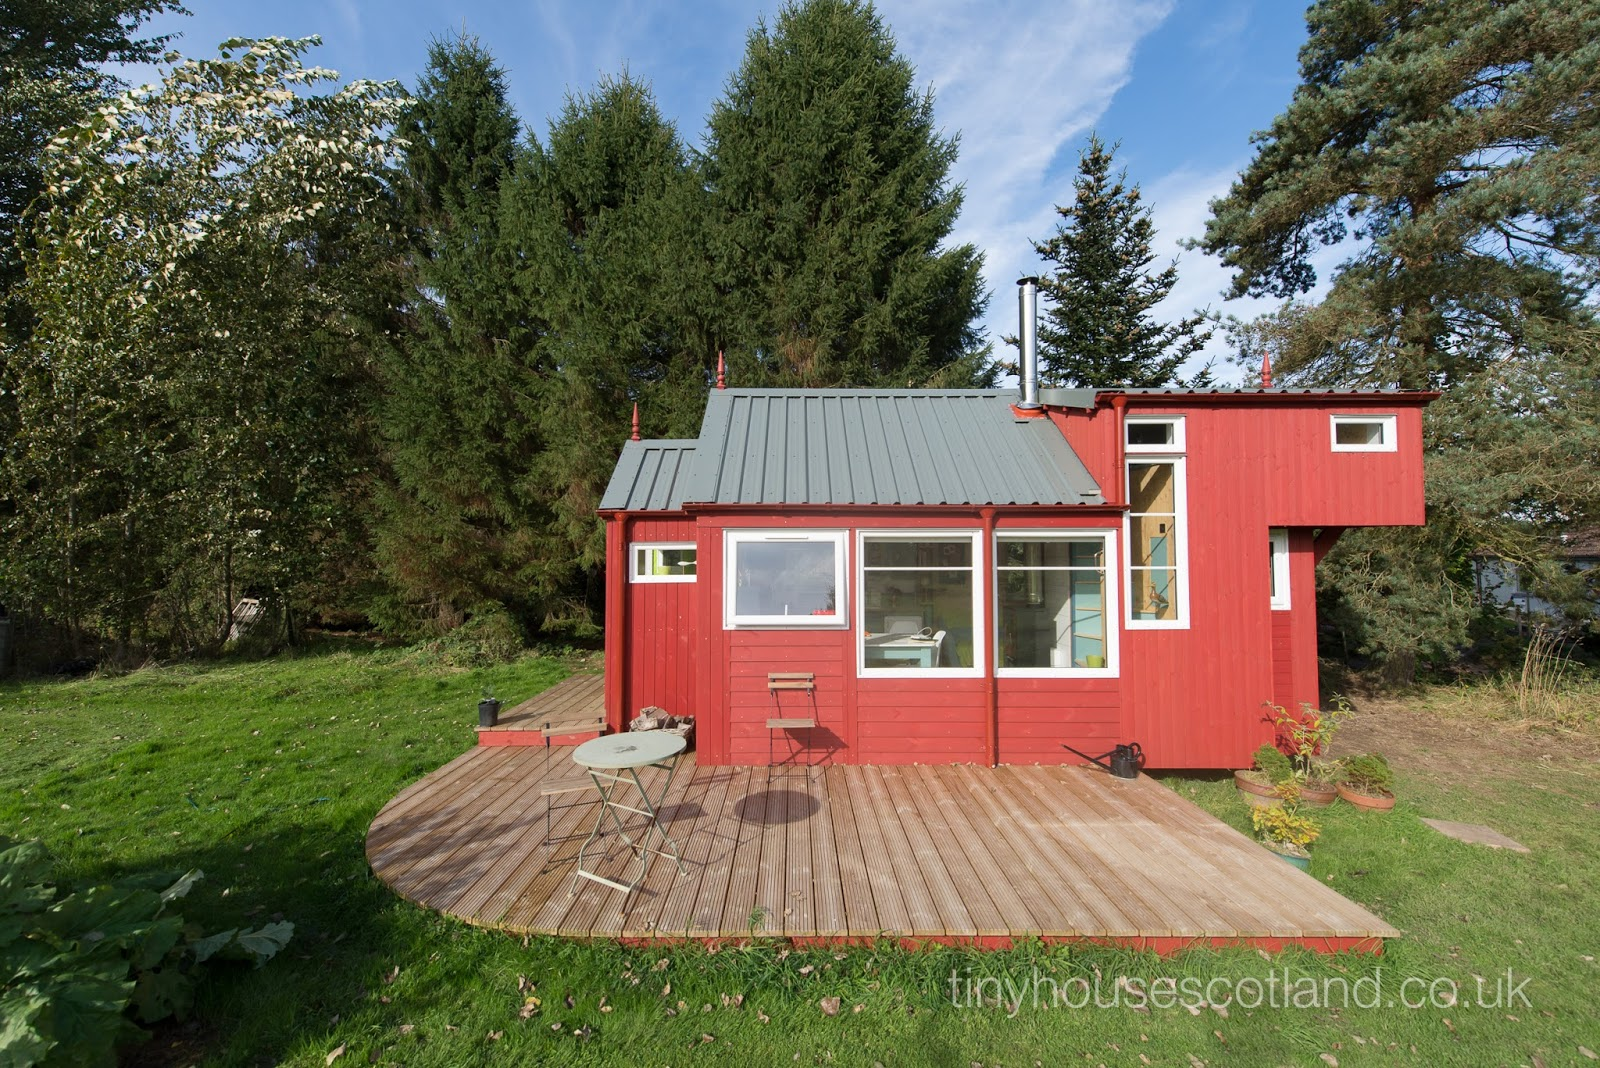 Tiny House Town The Nesthouse From Tiny House Scotland